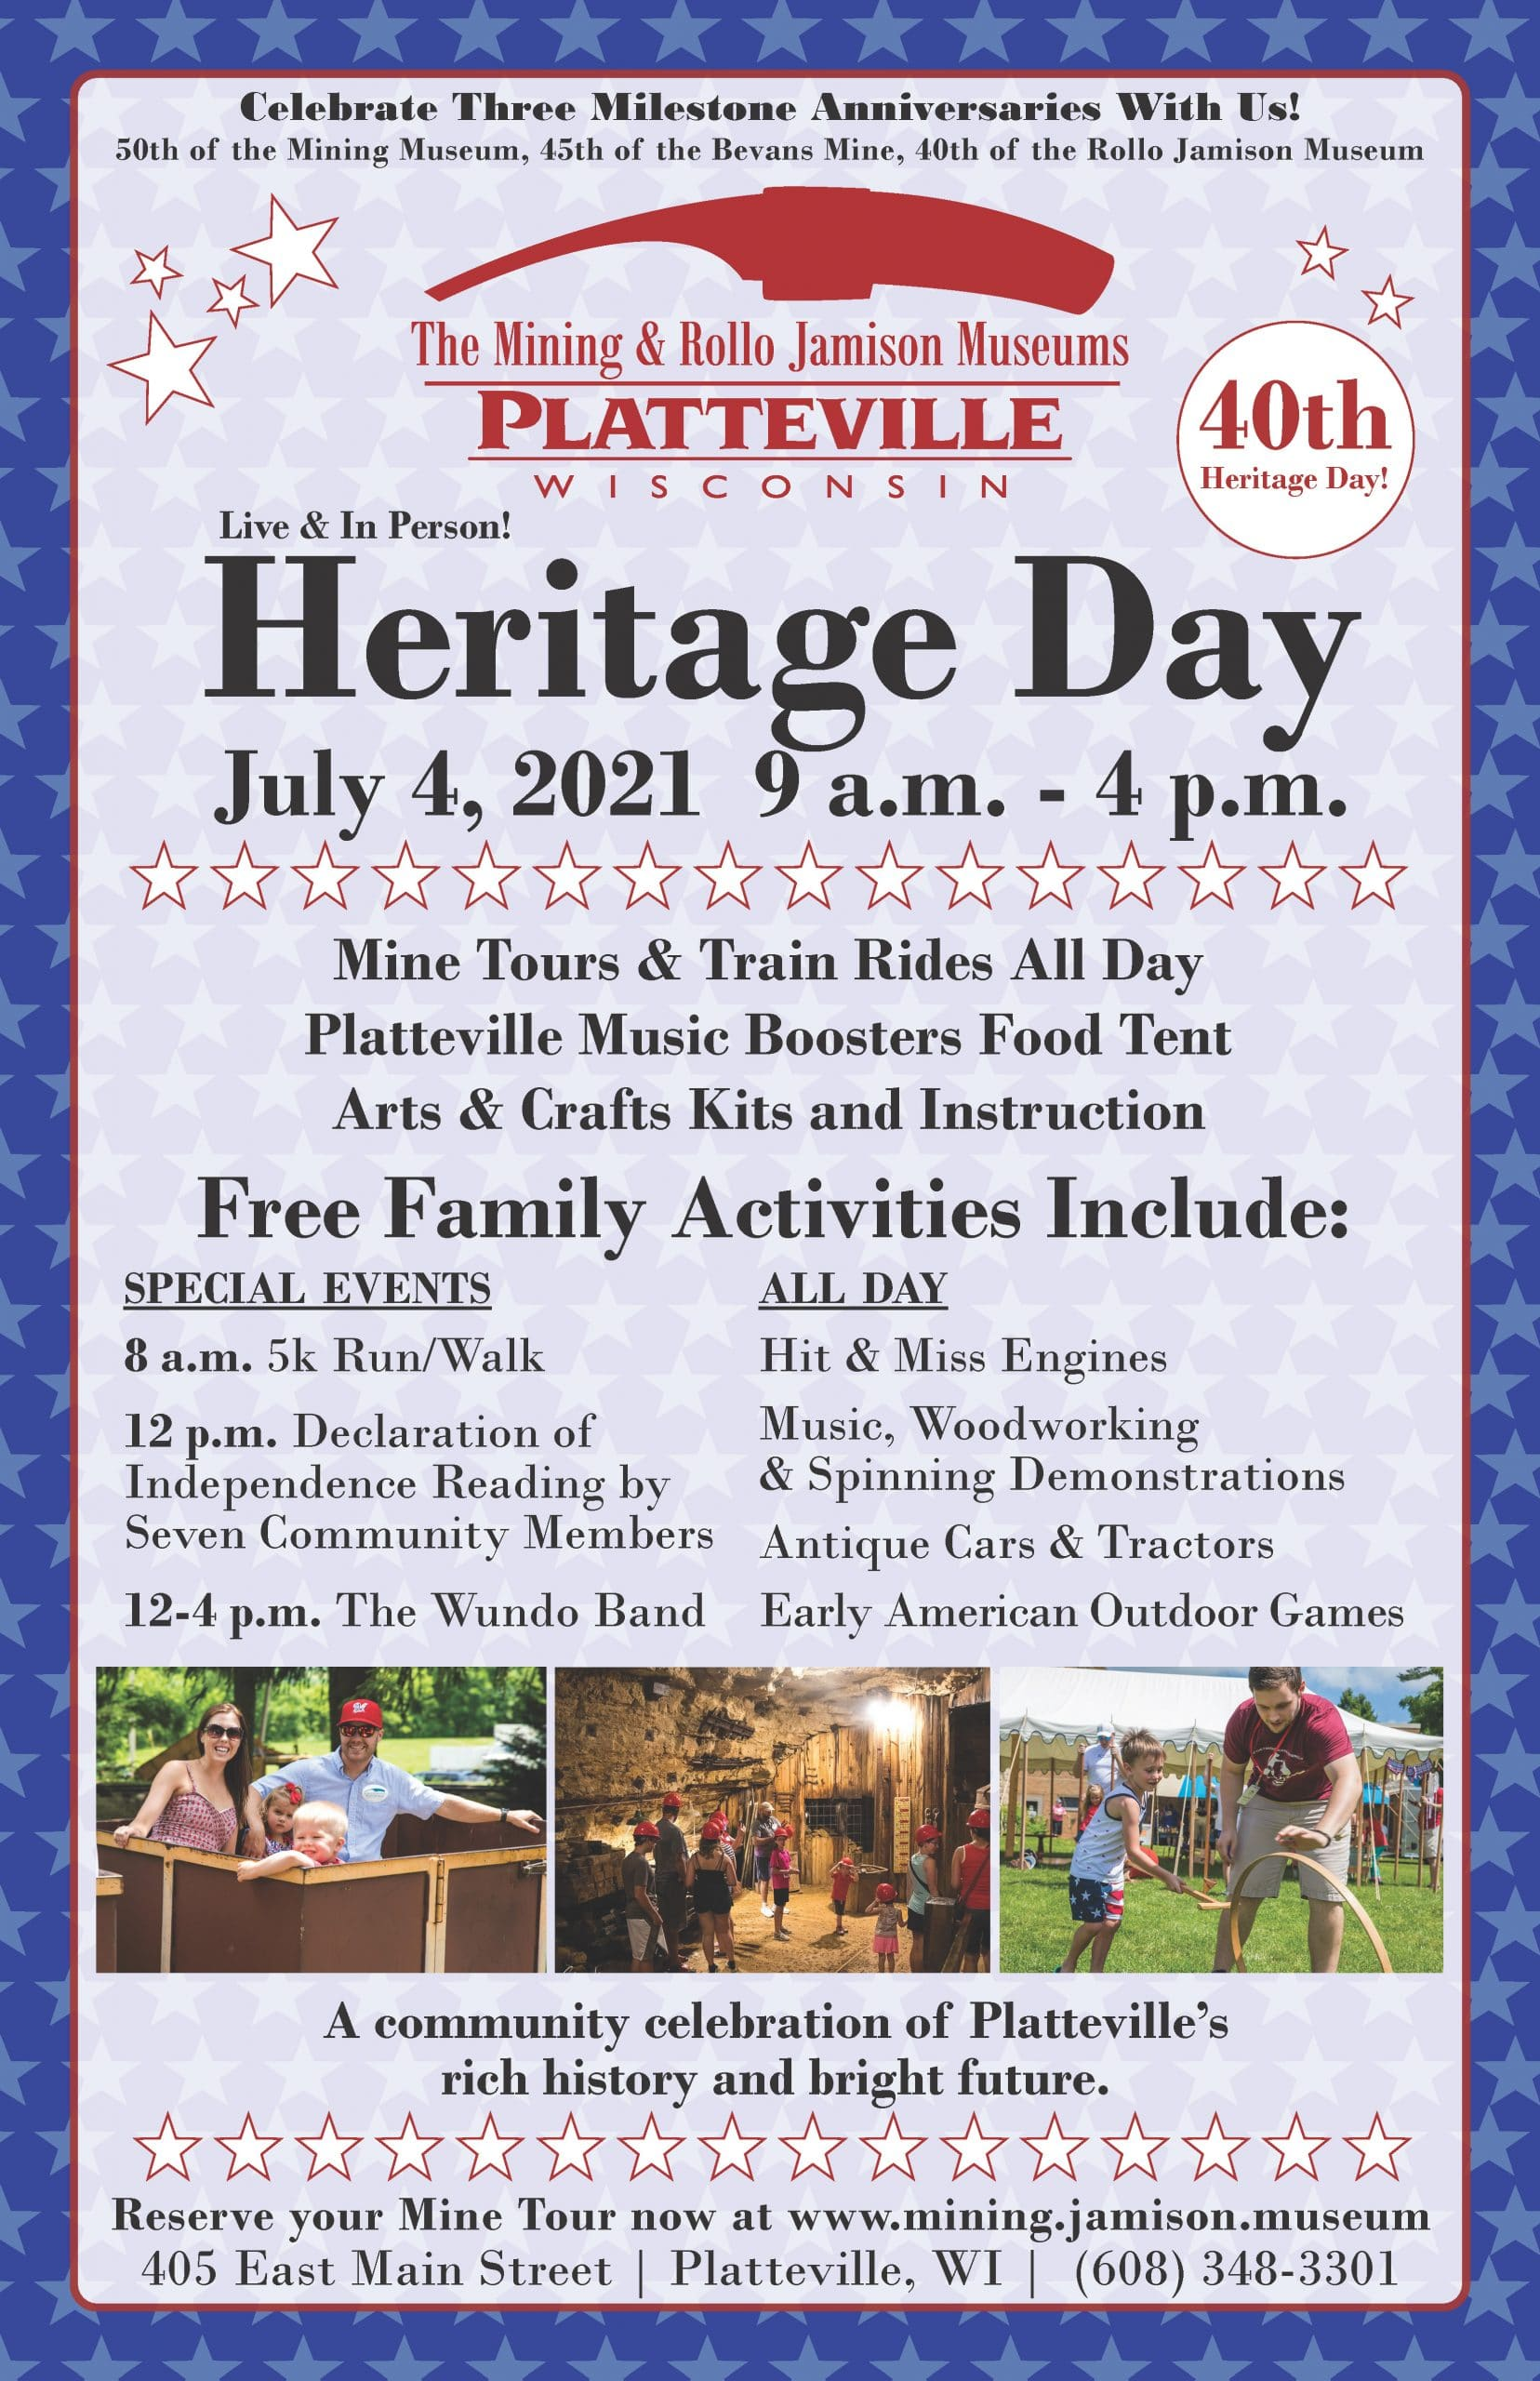 2021 heritage day poster in house